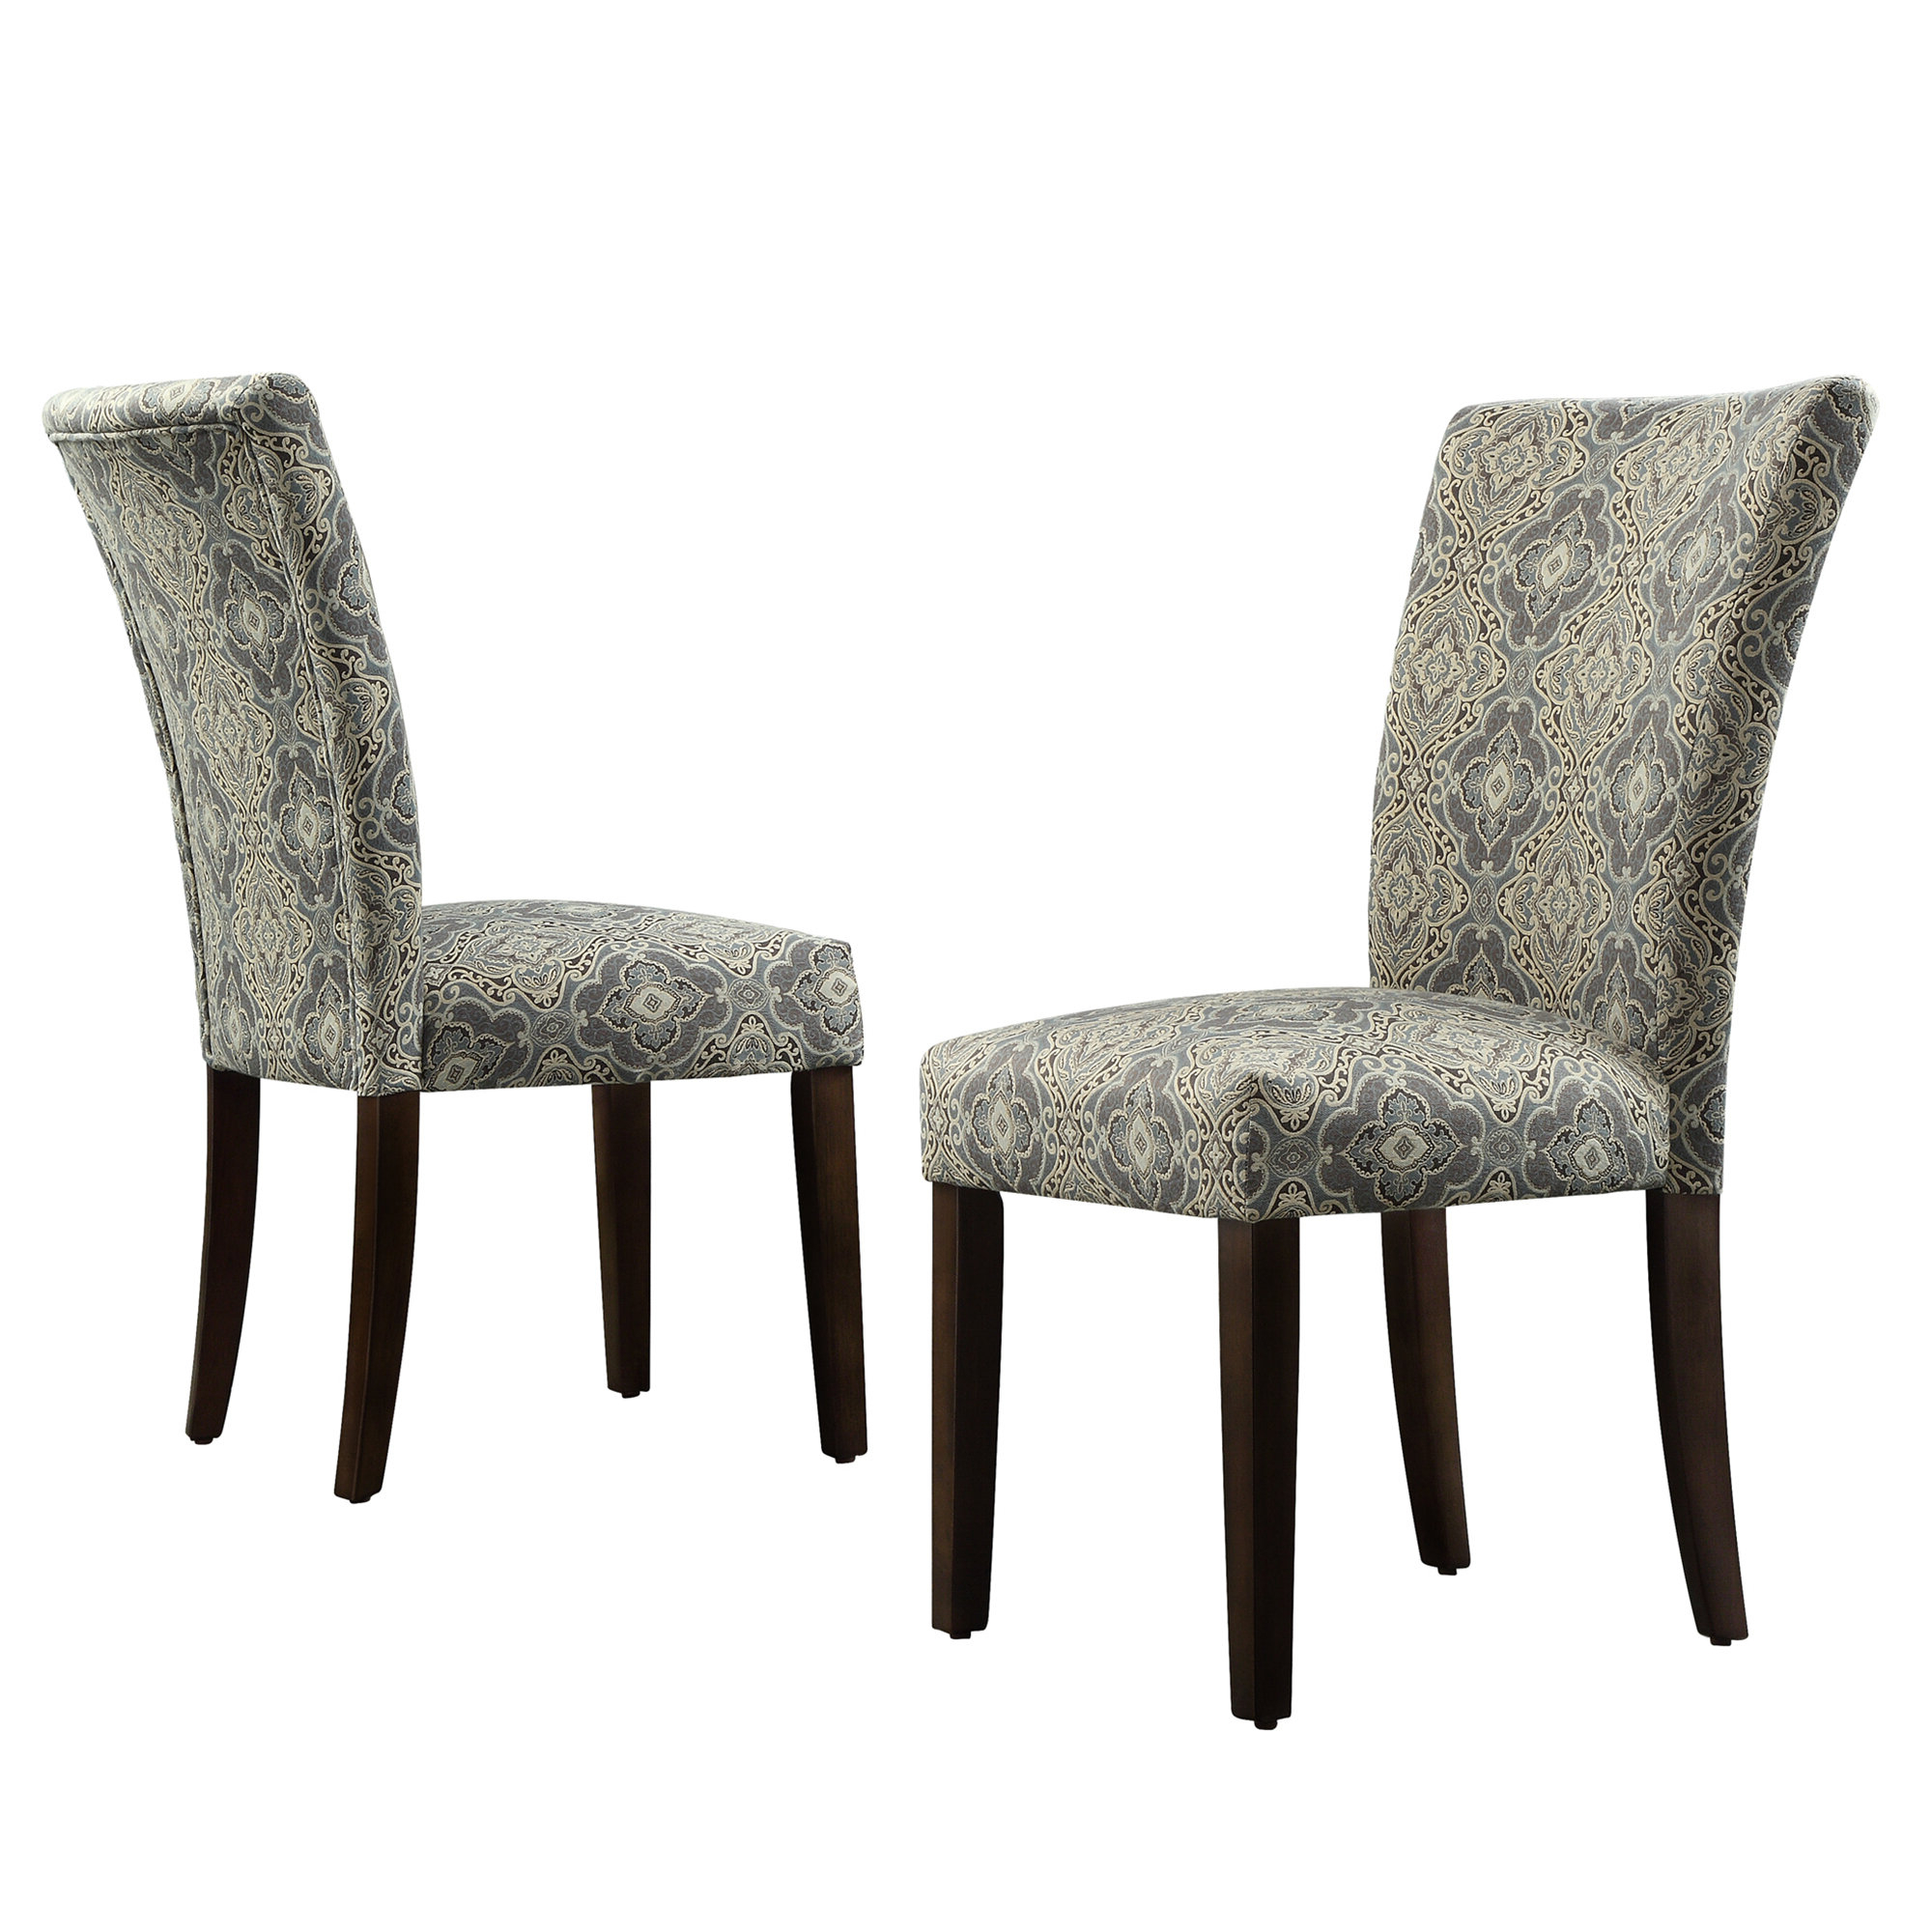 Wayfair For Aime Upholstered Parsons Chairs In Beige (View 11 of 20)